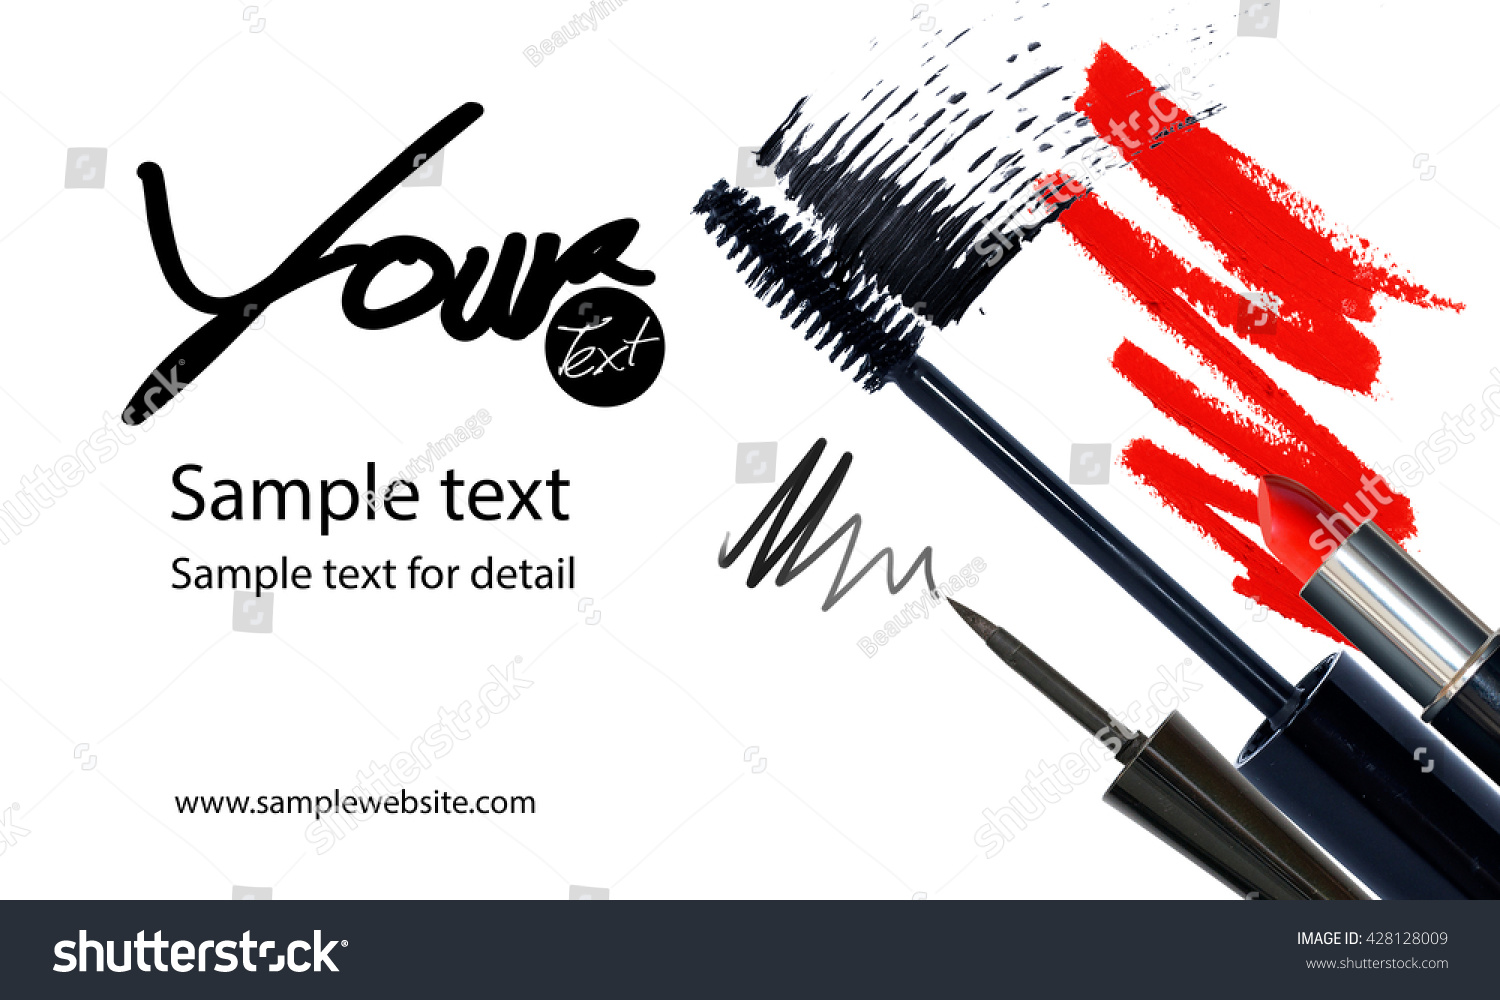 Royalty-free Makeup artist business card template… #428128009 ...